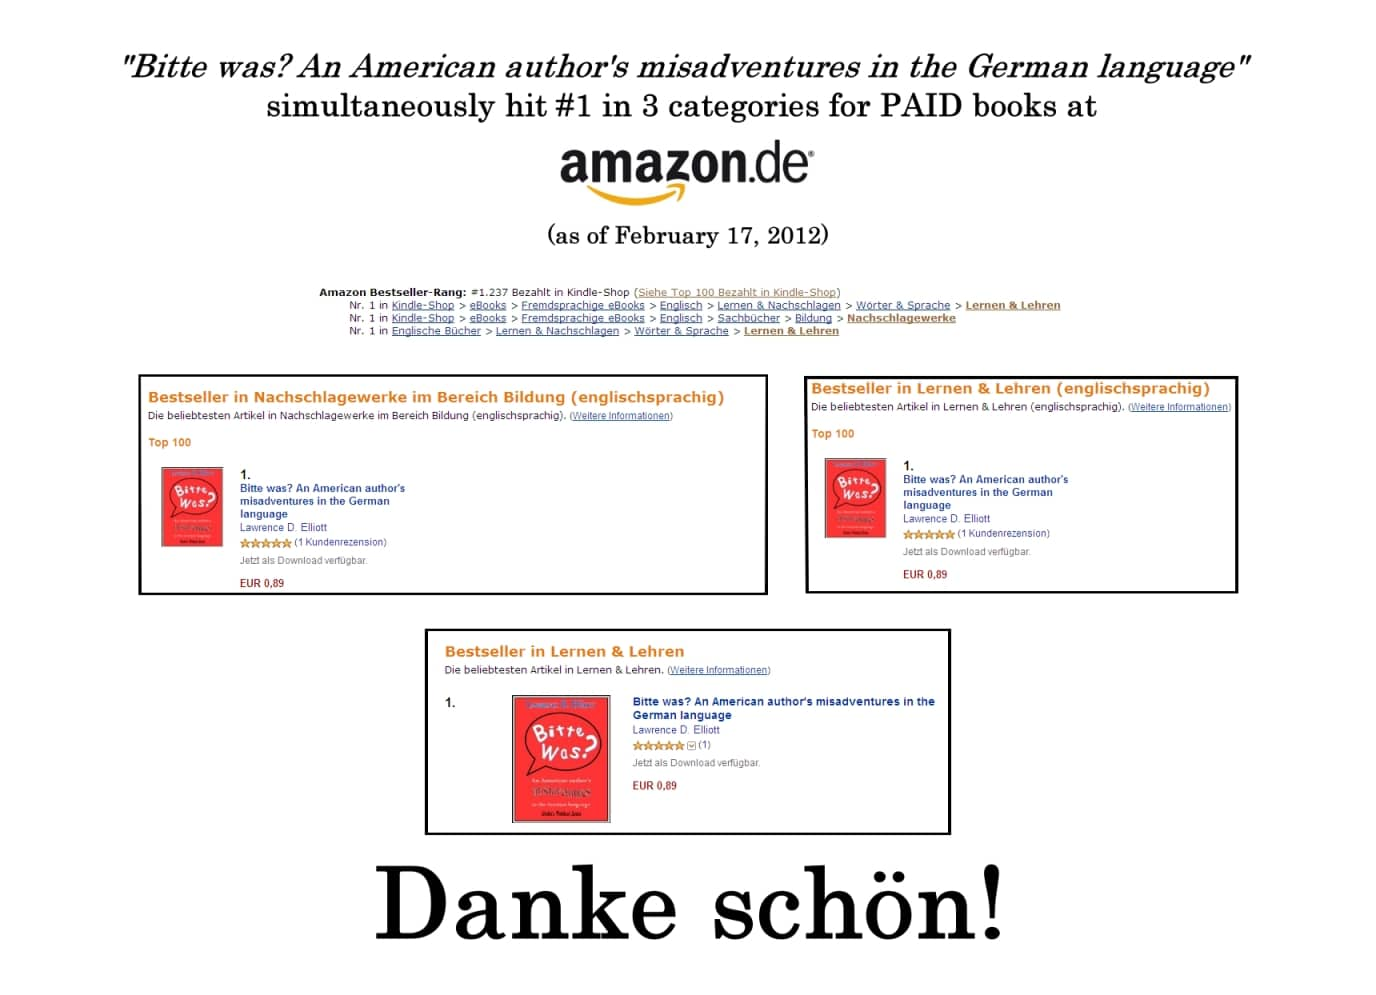 Bitte was? An American author's misadventures in the English language - #1 in 3 separate categories at Amazon.de!